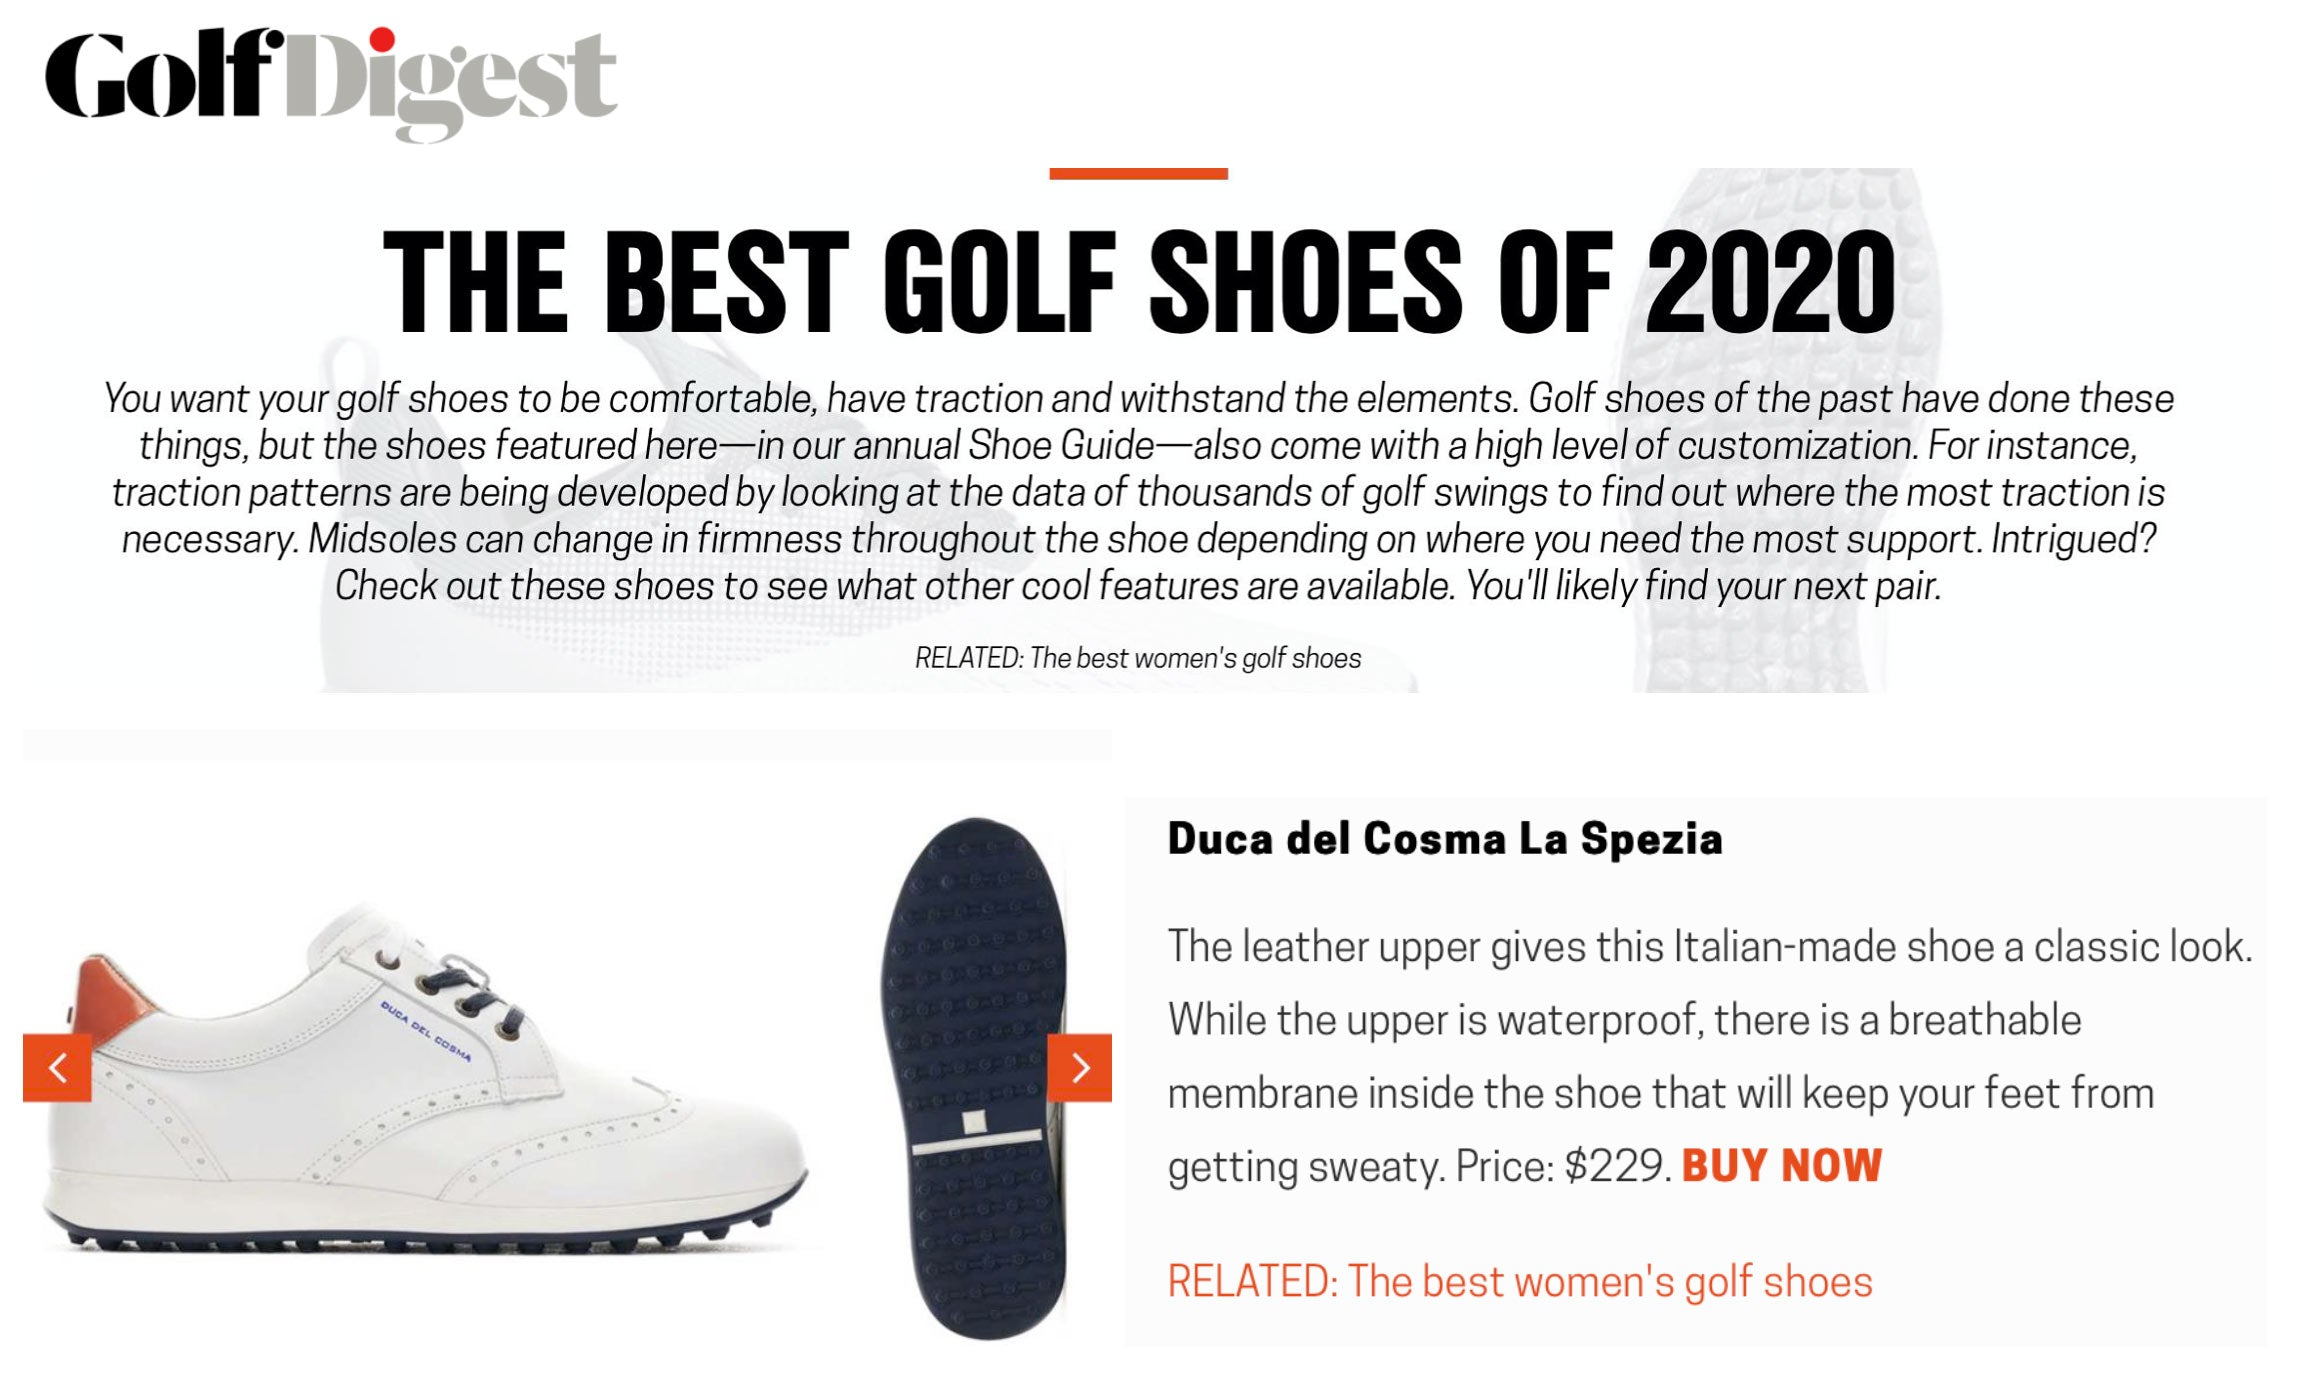 Golf Digest publication featuring the La Spezia shoe as one of the Best Golf Shoes of 2020